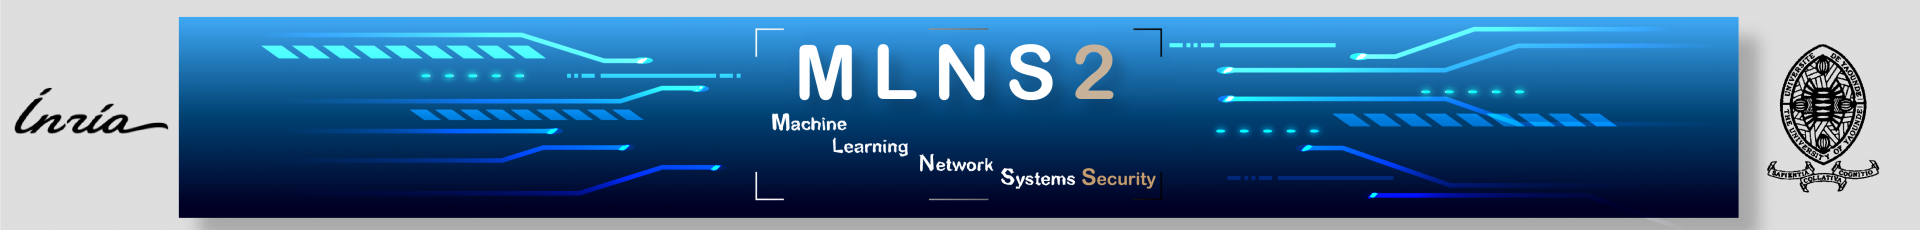 Machine Learning, Network, System and Security